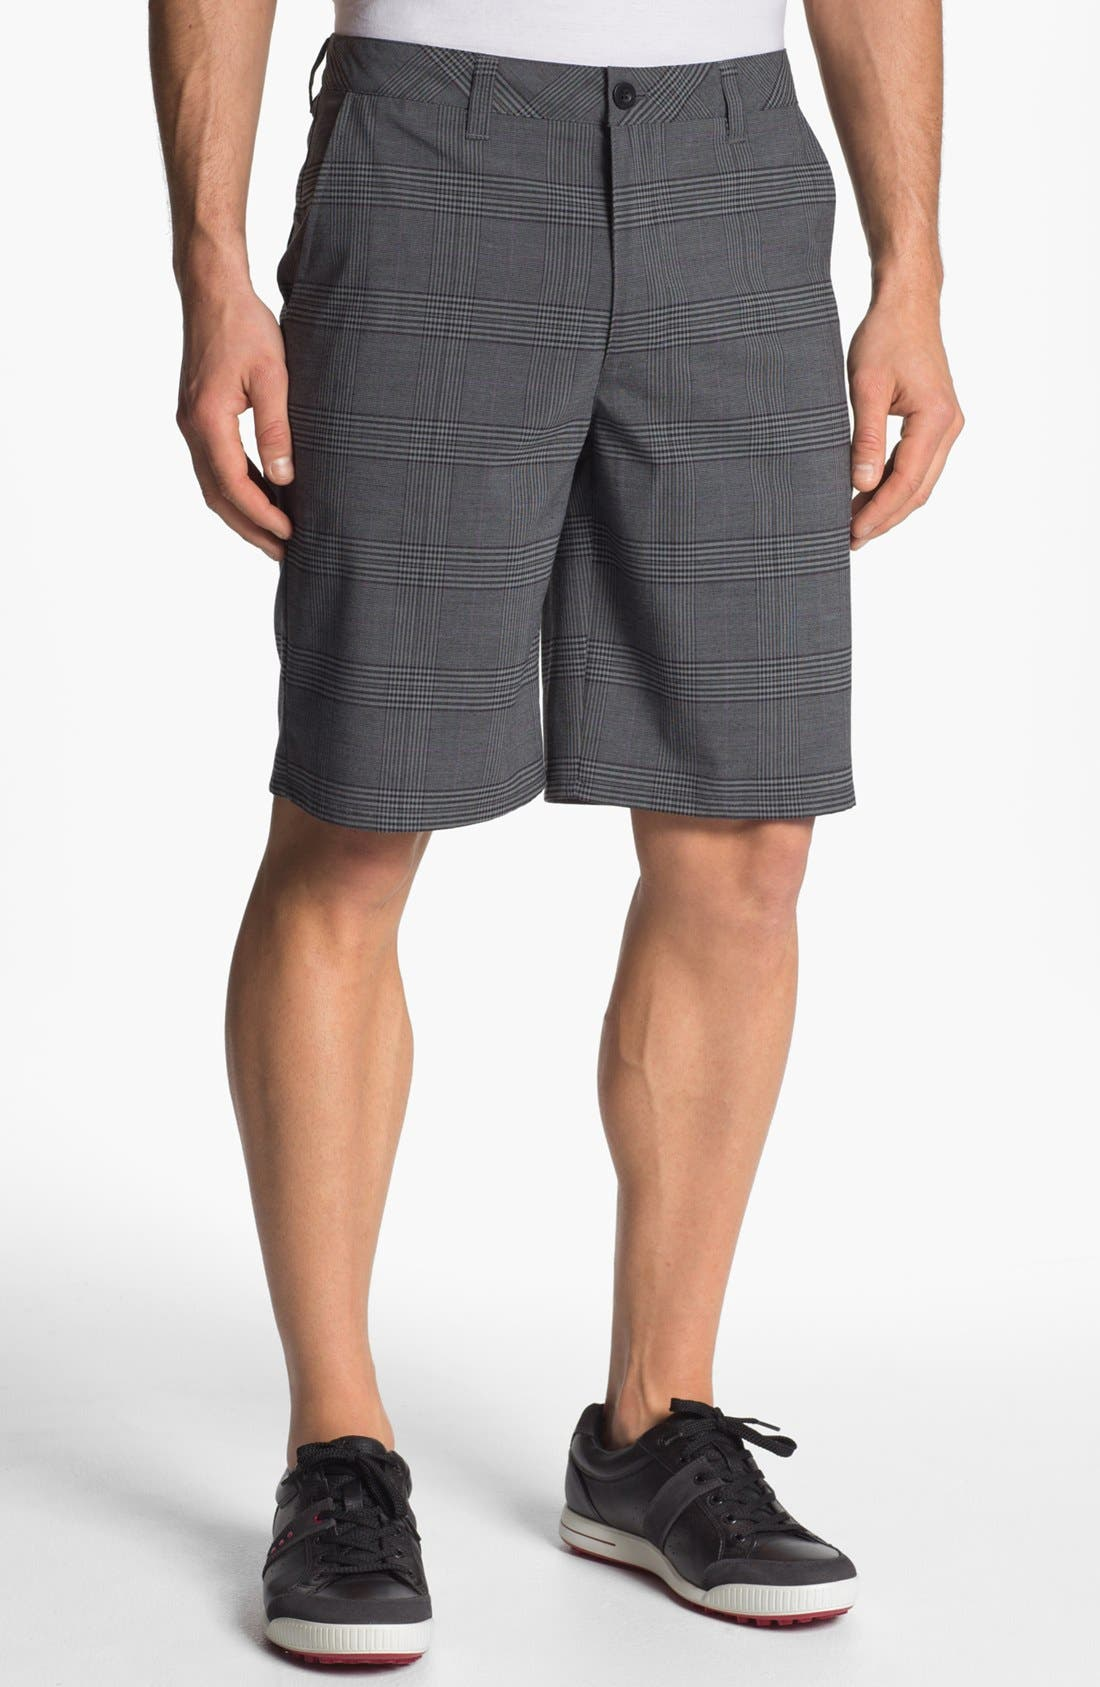 Alternate Image 1 Selected - Travis Mathew 'Consignment' Golf Shorts